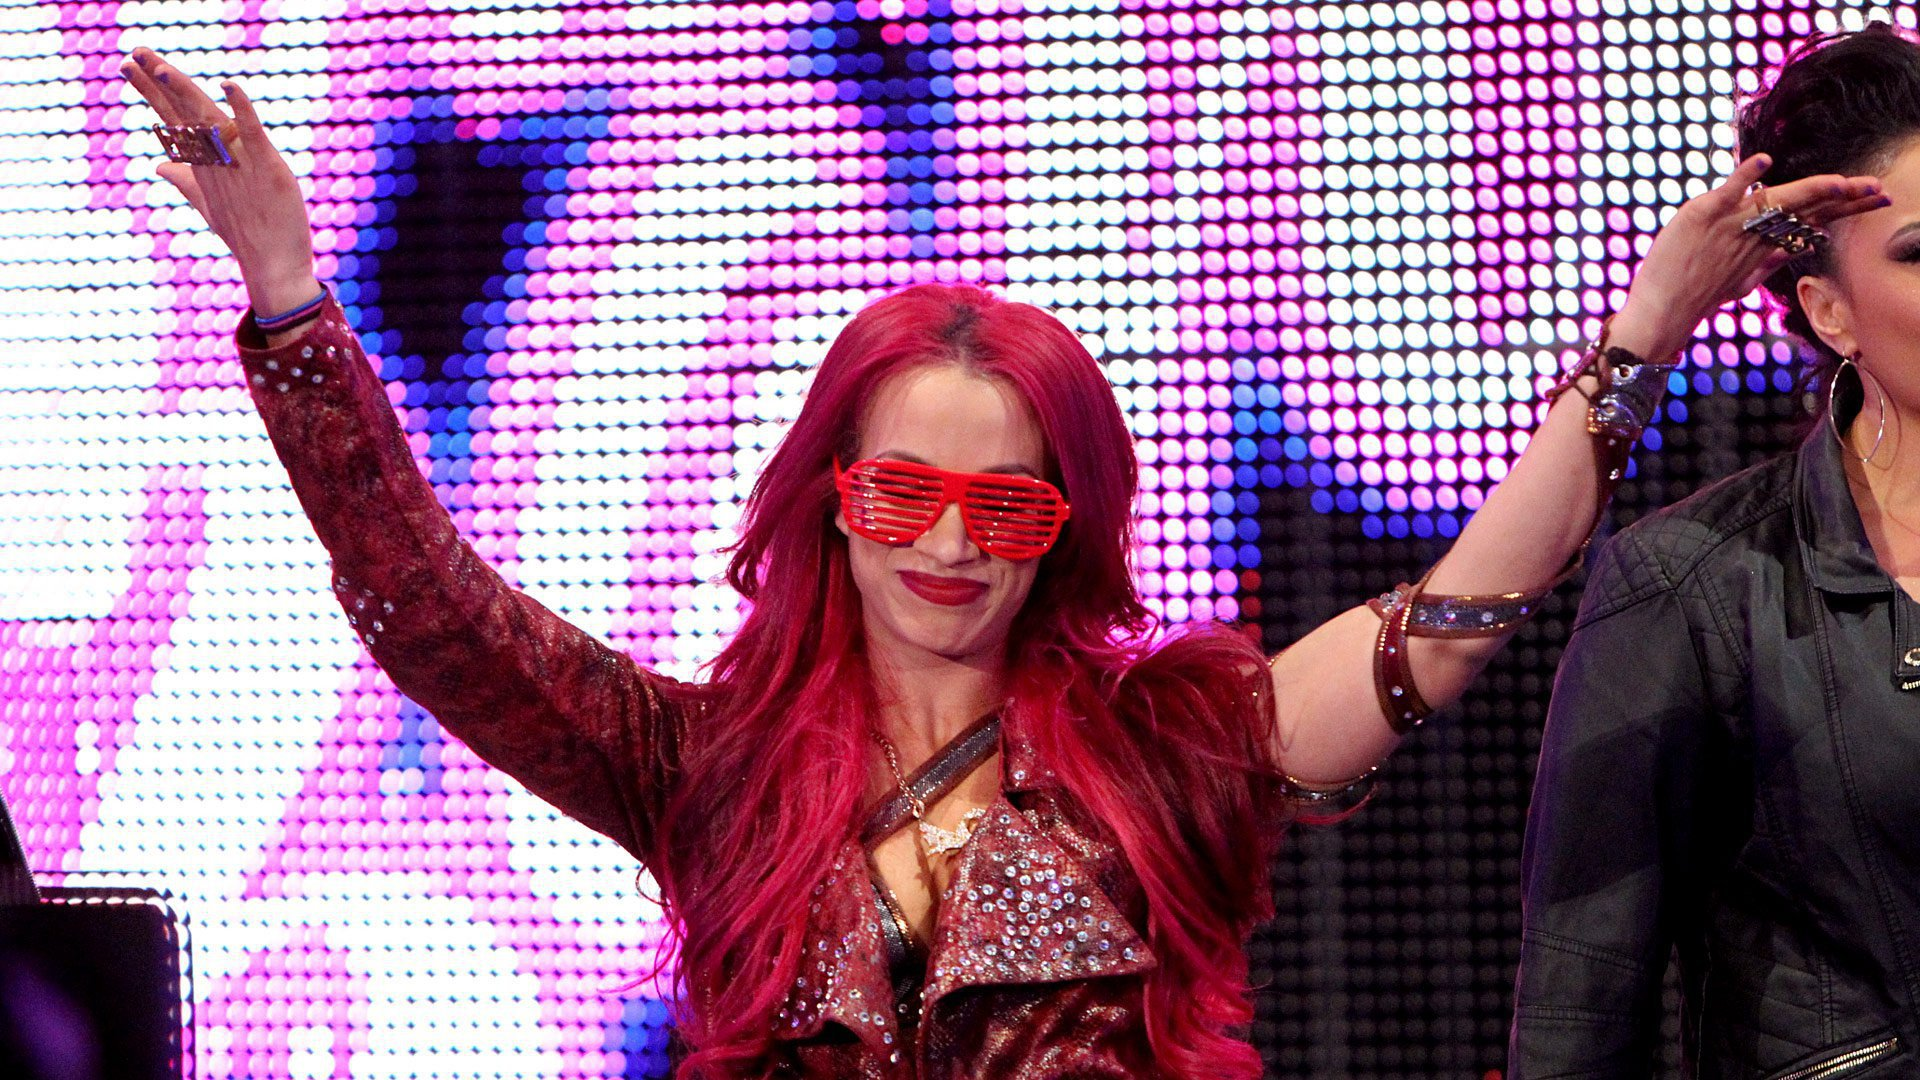 Sasha Banks may be wicked, but she received a loving response from her hometown Boston crowd.